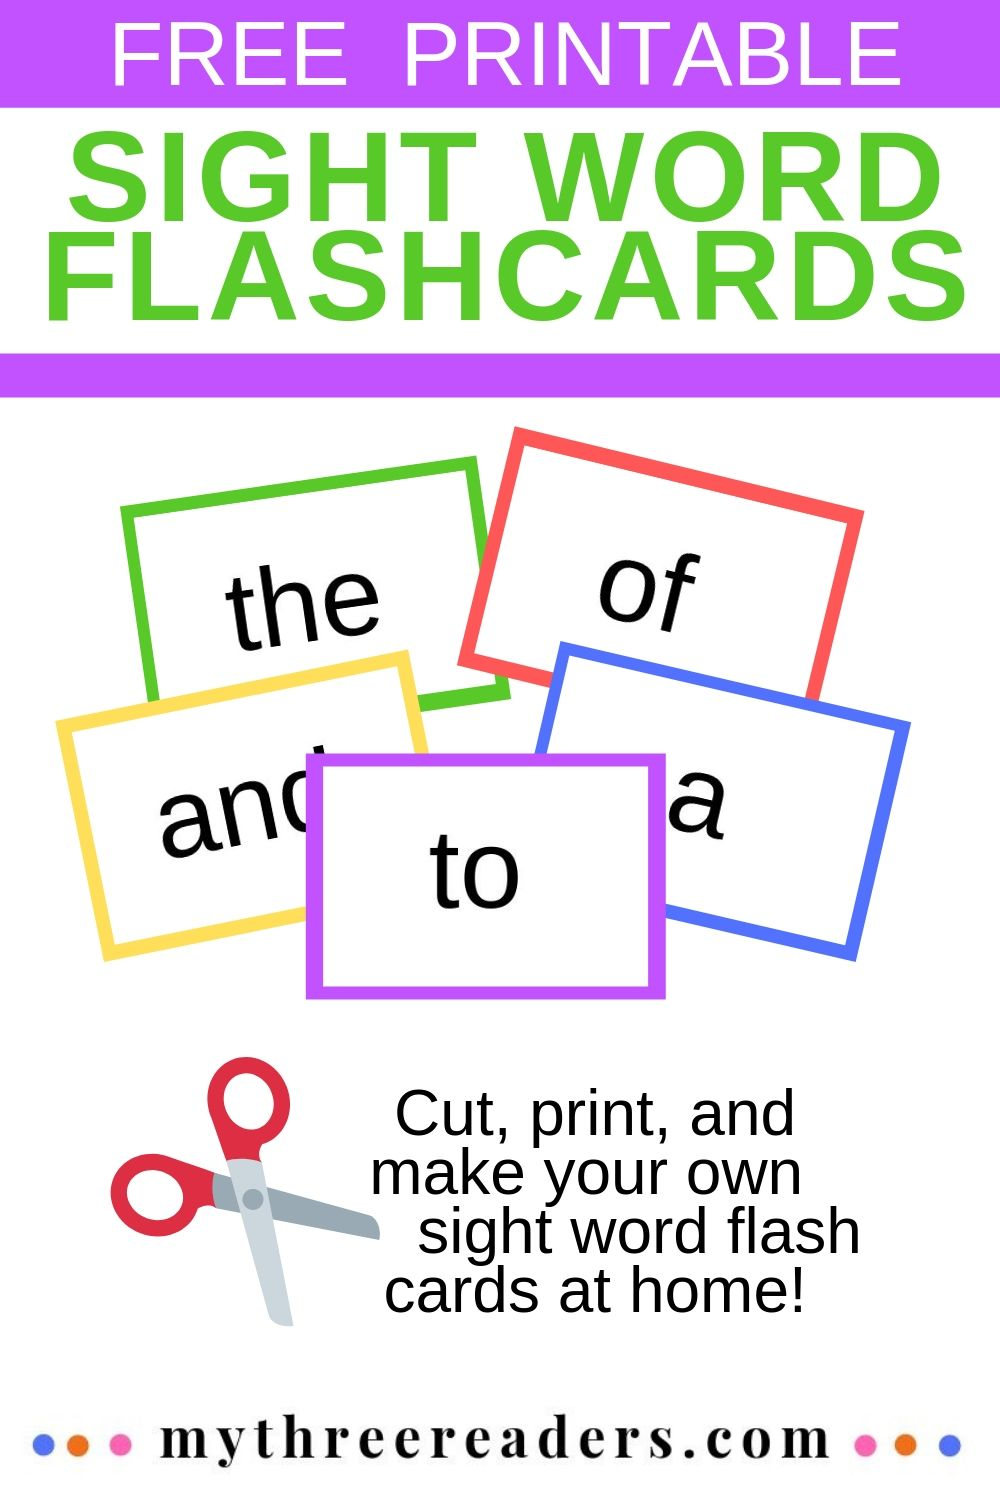 image regarding Printable Sight Words called Deliver Your Individual Sight Term Flash Playing cards - Absolutely free, Printable for By yourself!